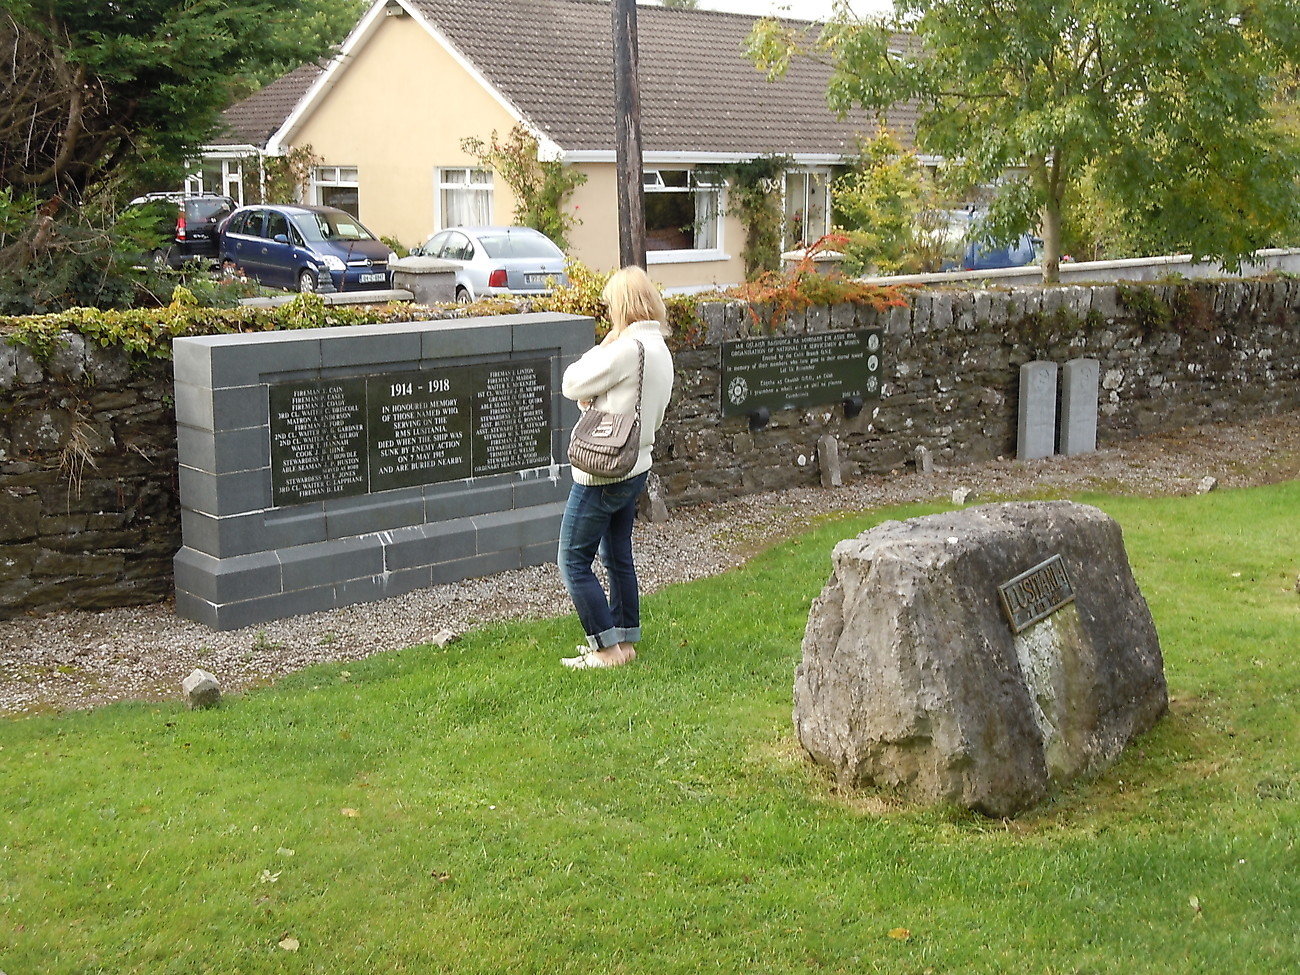 Lusitania graves in Cobh (Queenstown)